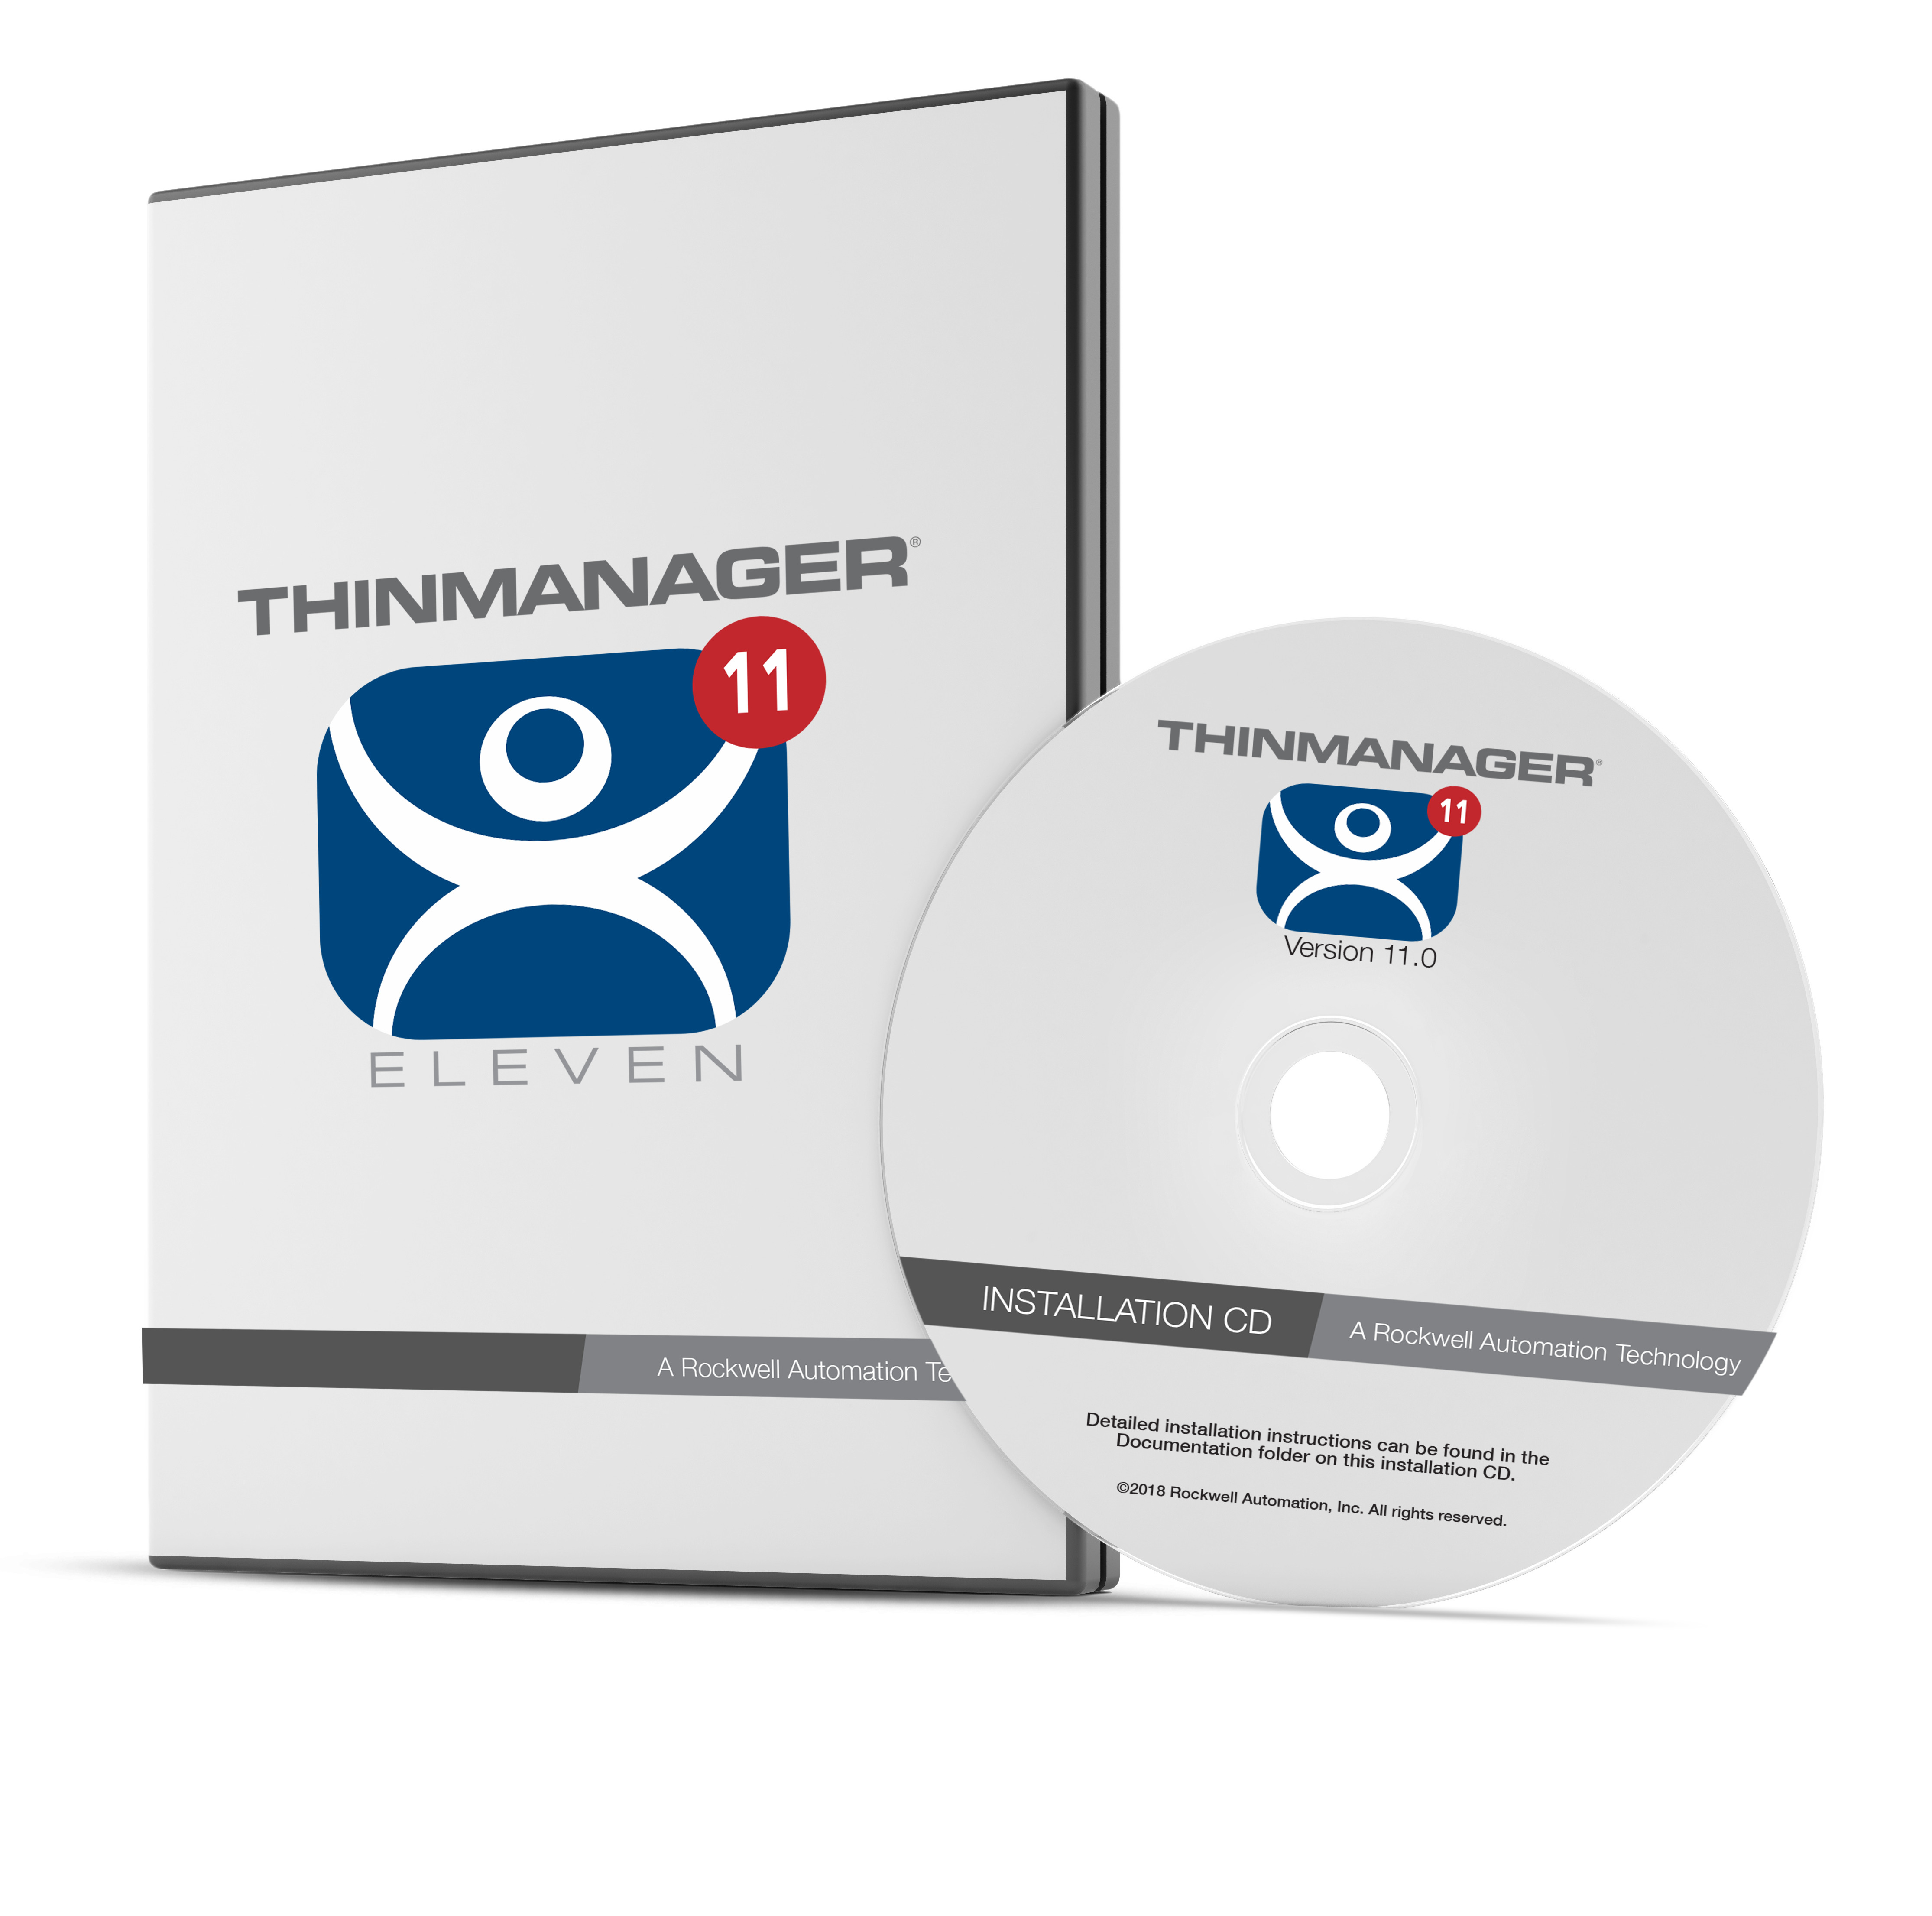 ThinManager 11.0